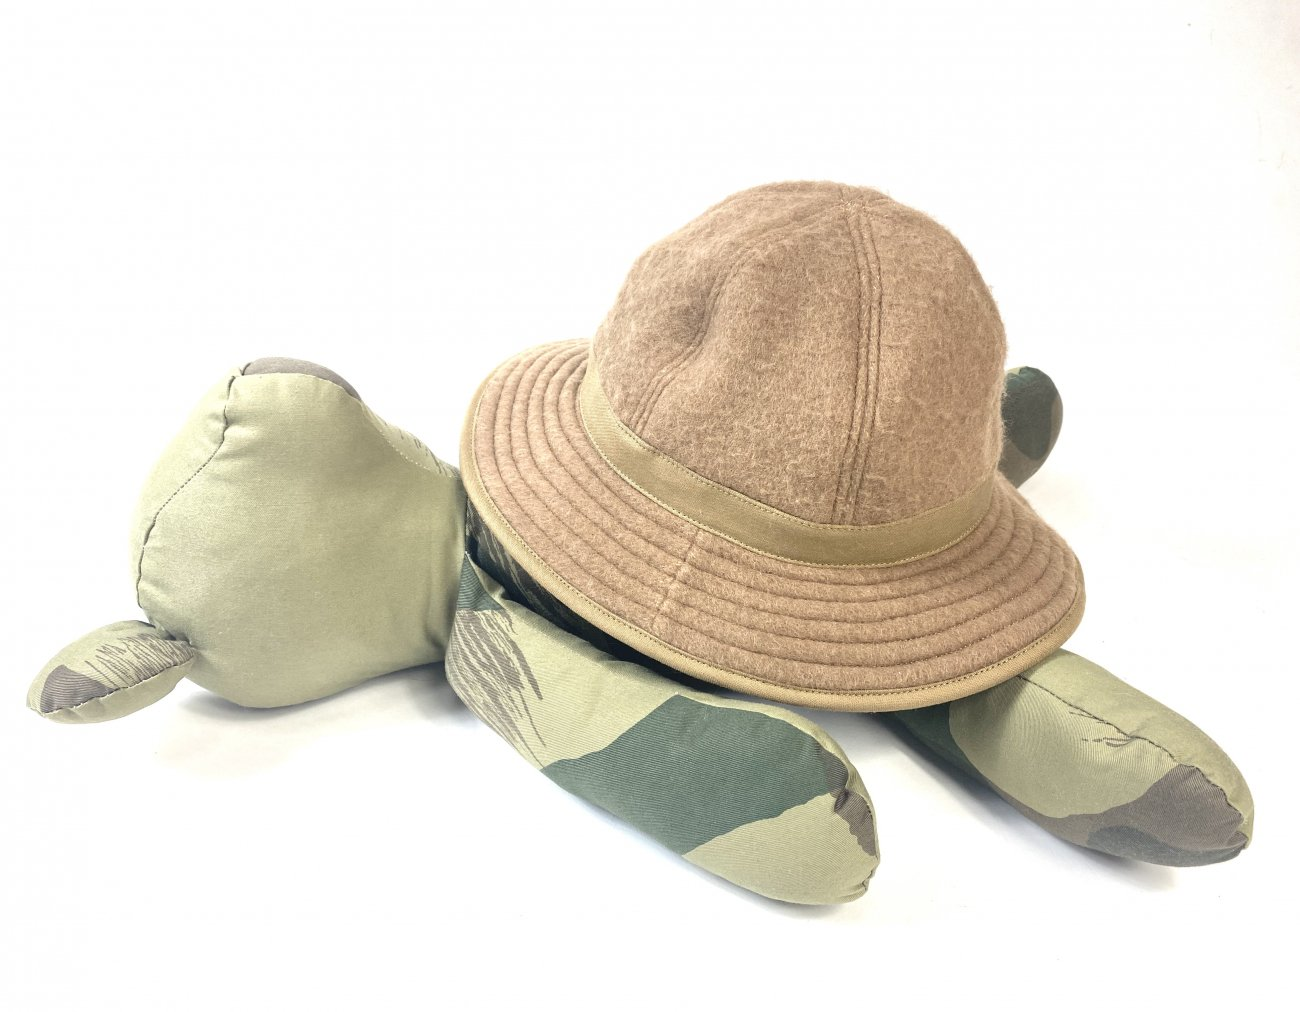 Vintage Wool Safari Hat